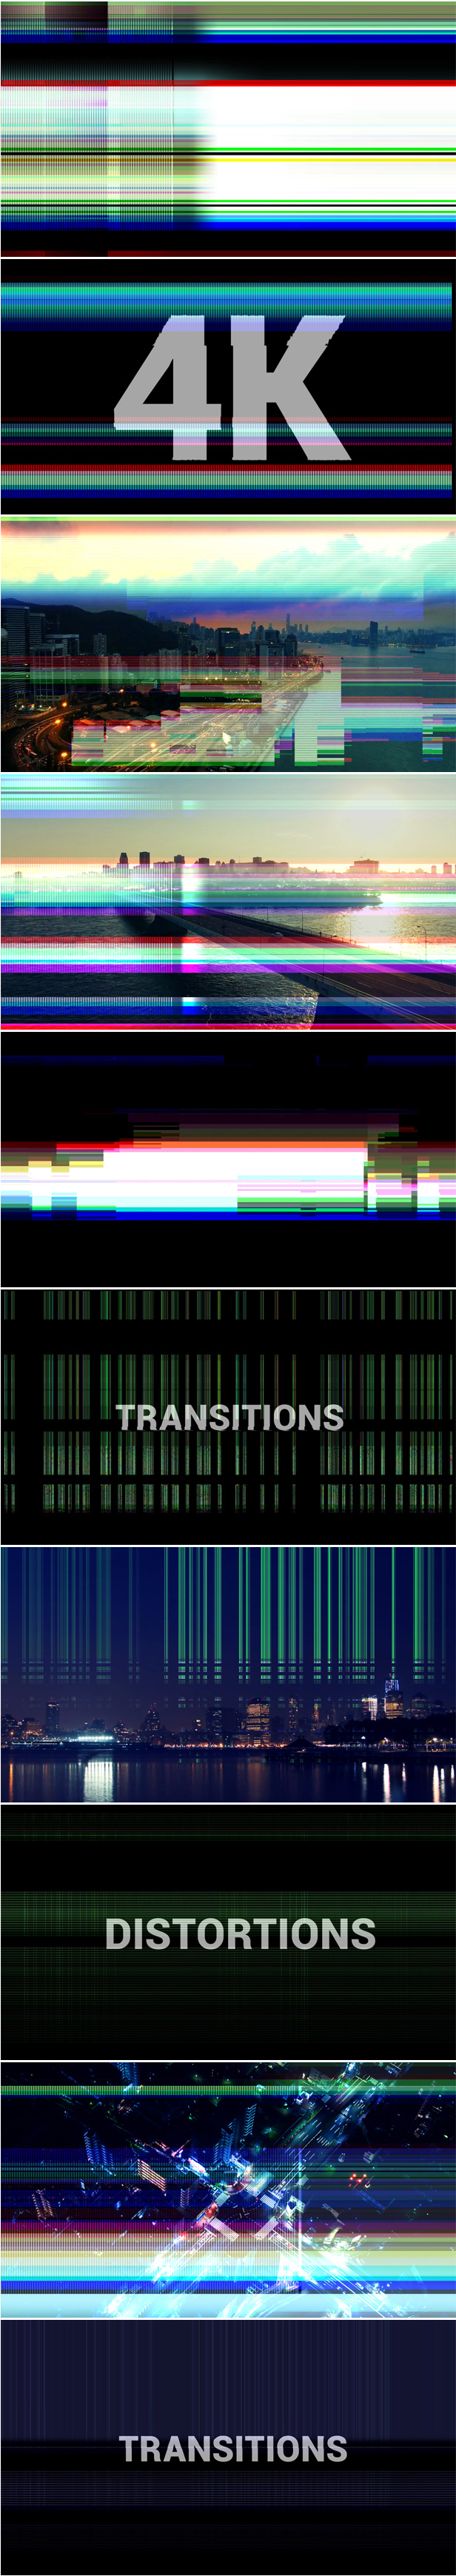 Glitch Transitions 4K UltraHD